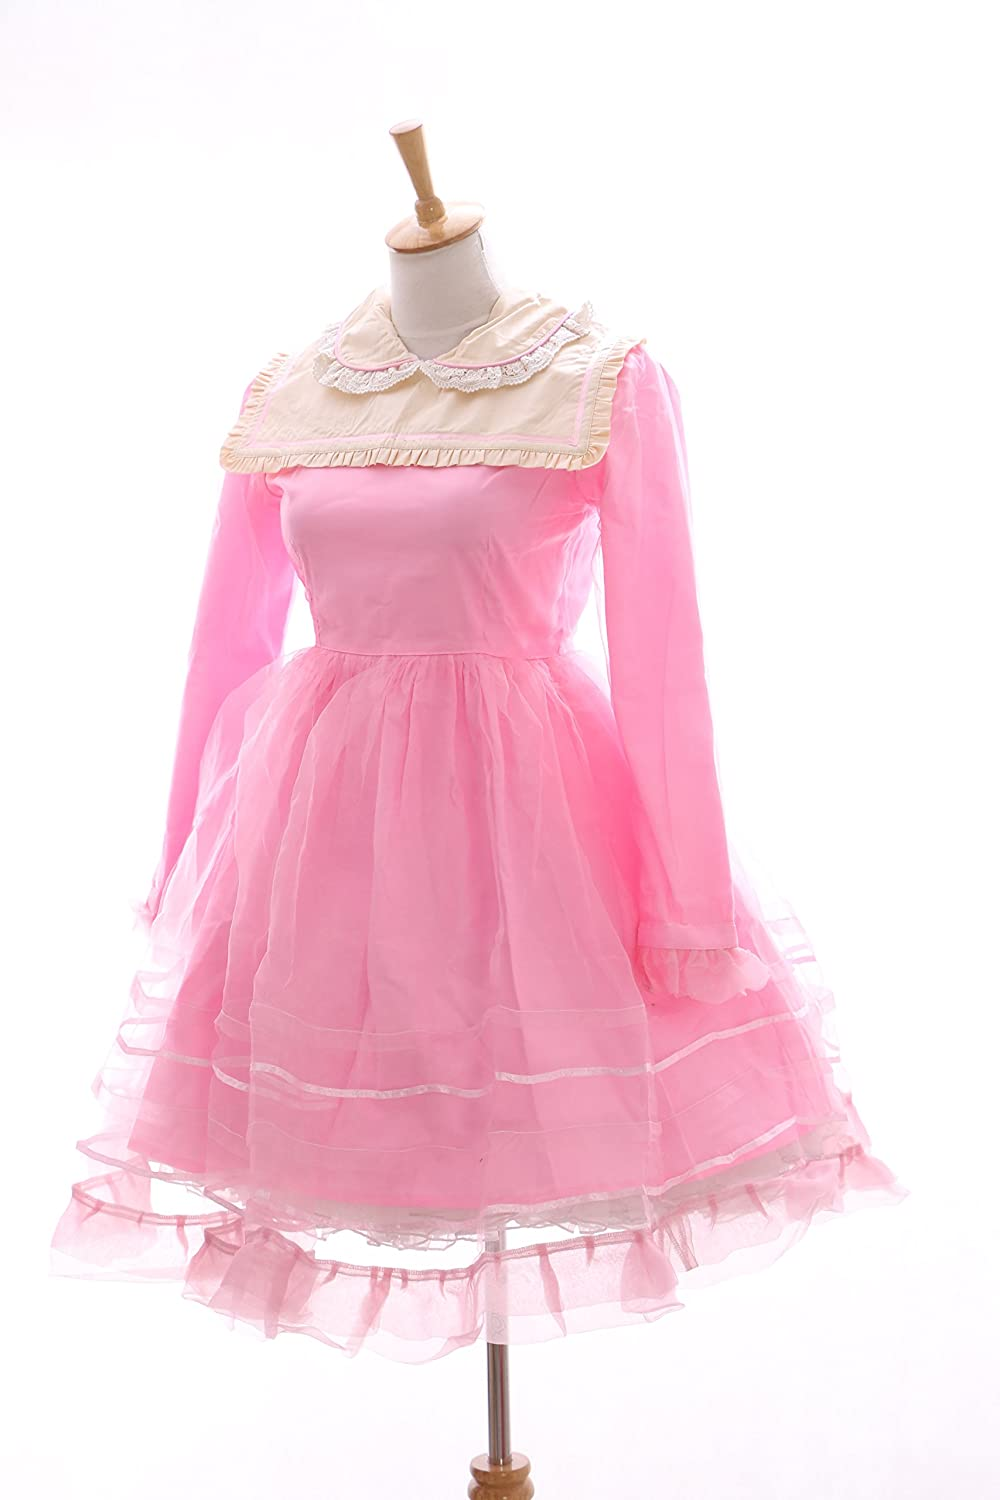 Kawaii-Story JL de 565 - 2 Color Rosa Gothic Lolita Japón Vestido Disfraz Dress Cosplay Baby Doll: Amazon.es: Juguetes y juegos